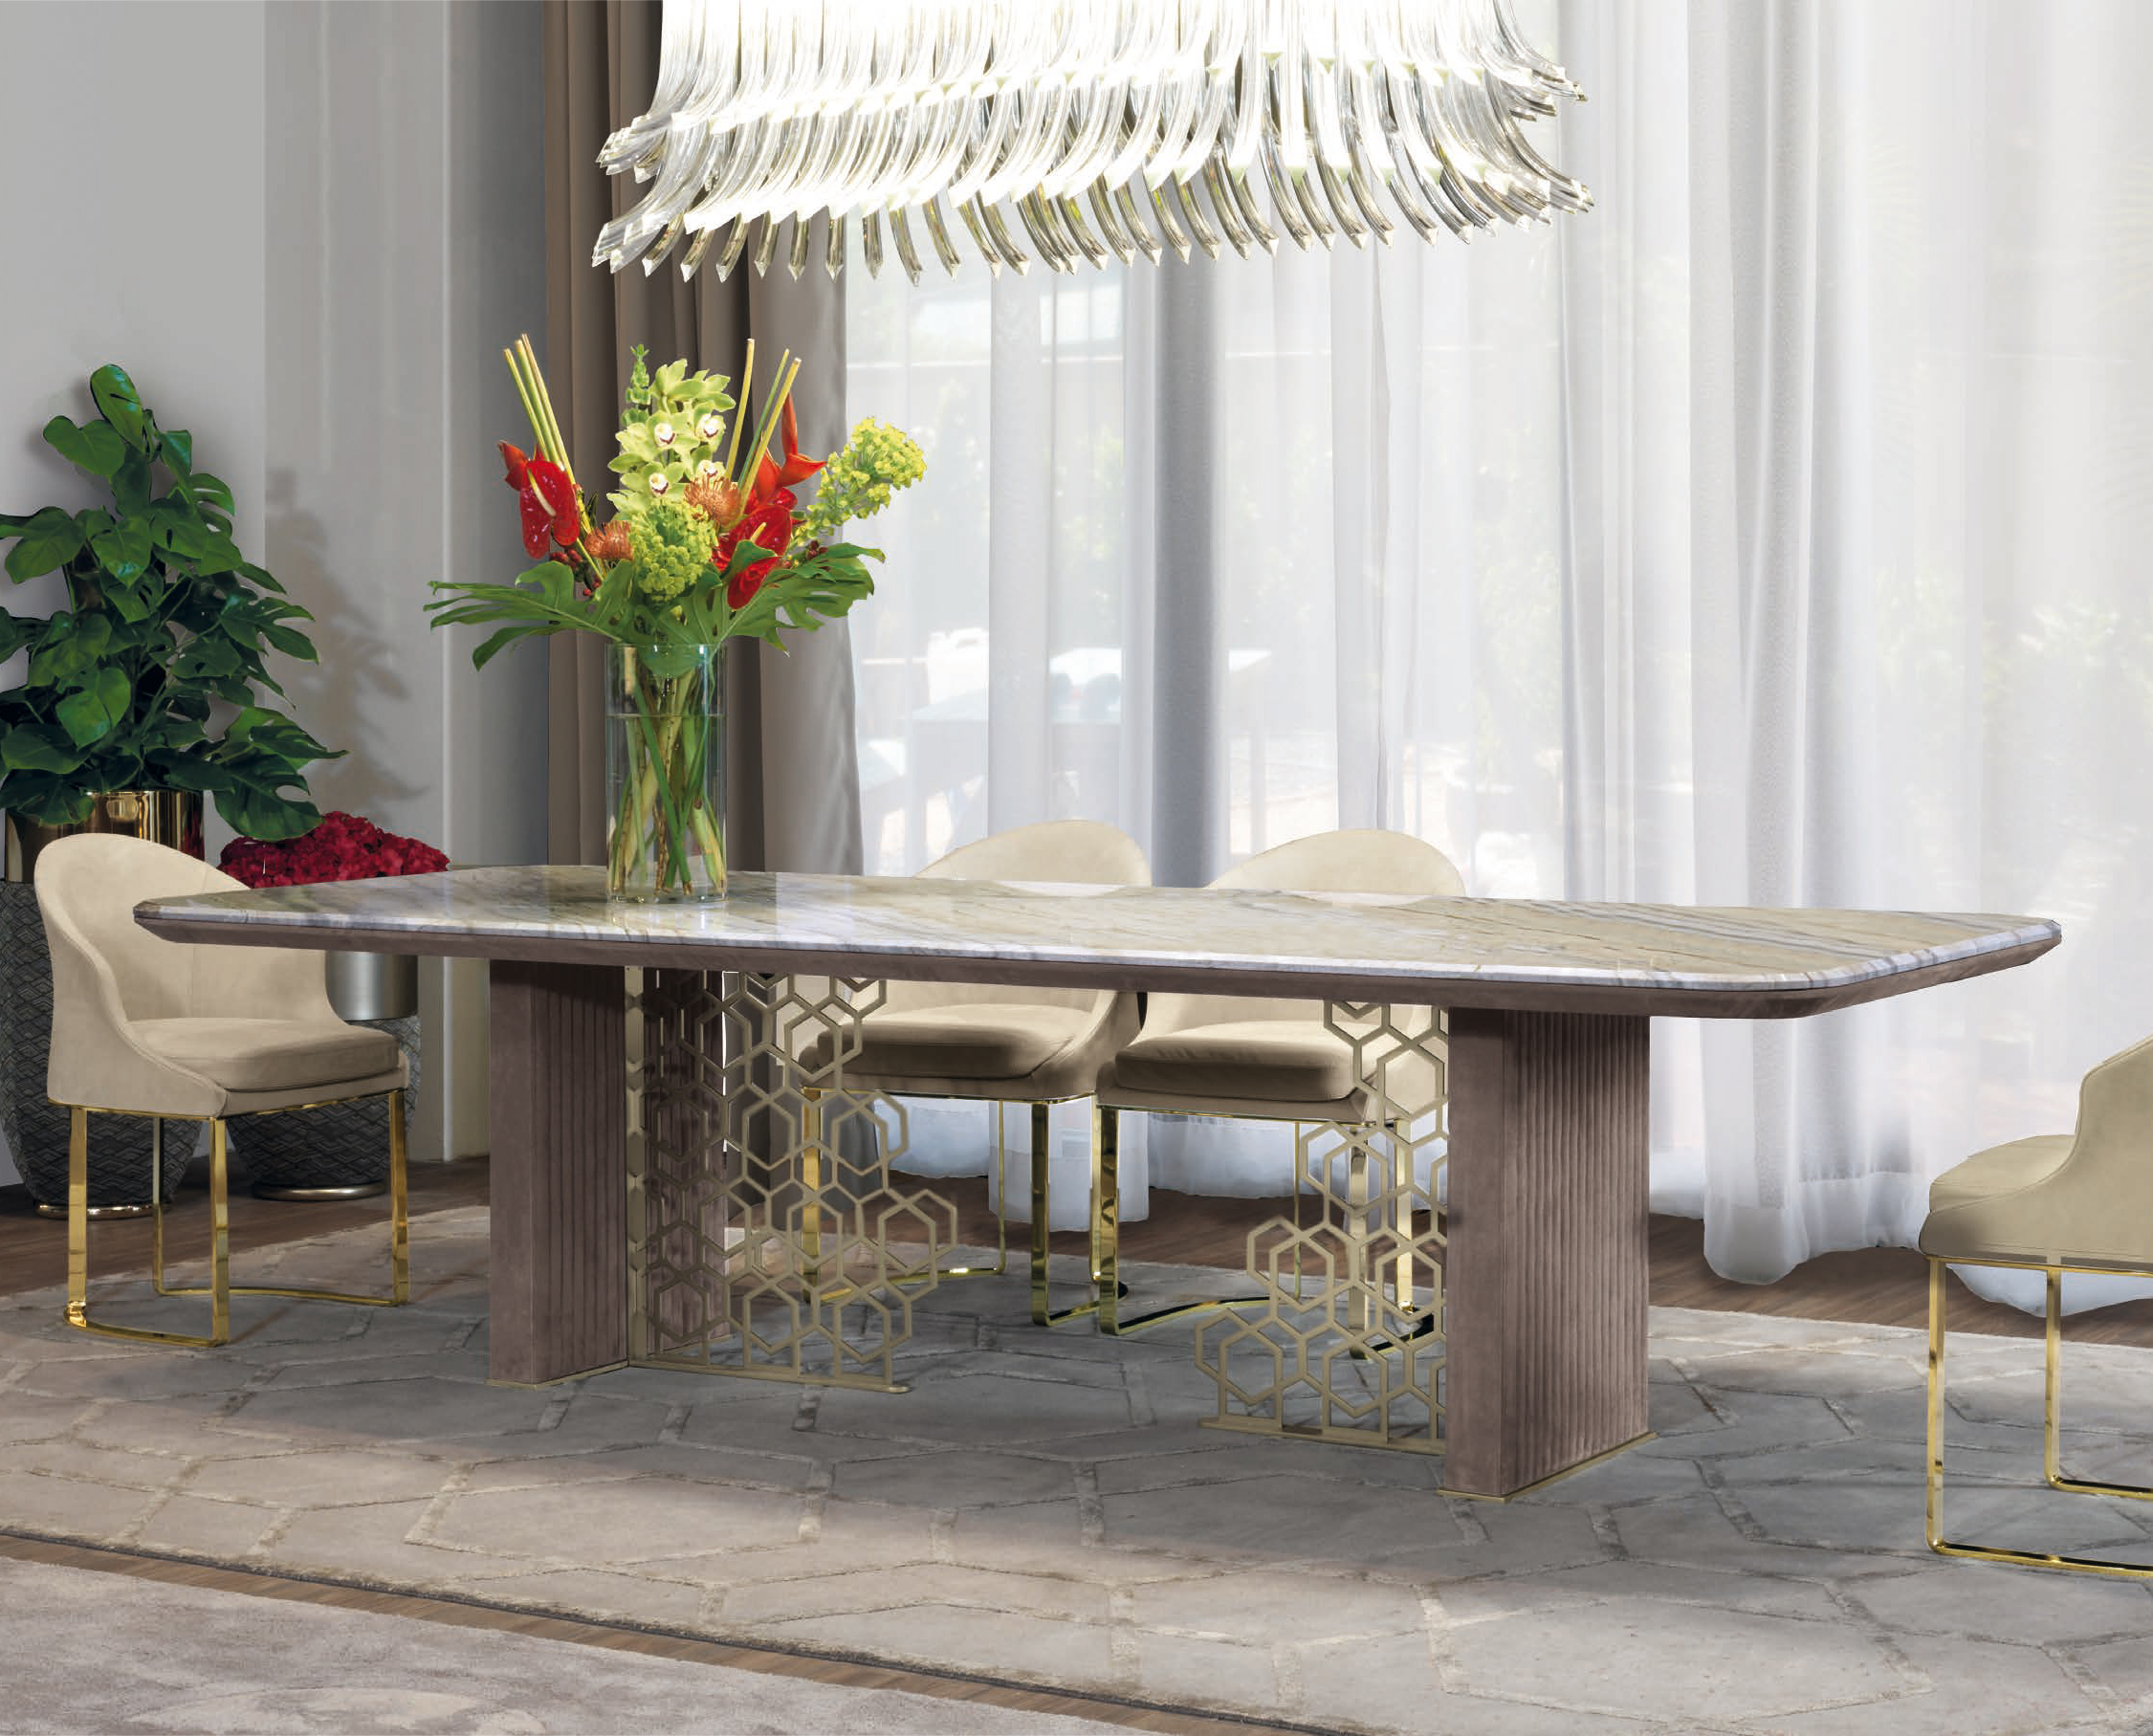 Merveilleux Excelsior Table · Excelsior Table ...